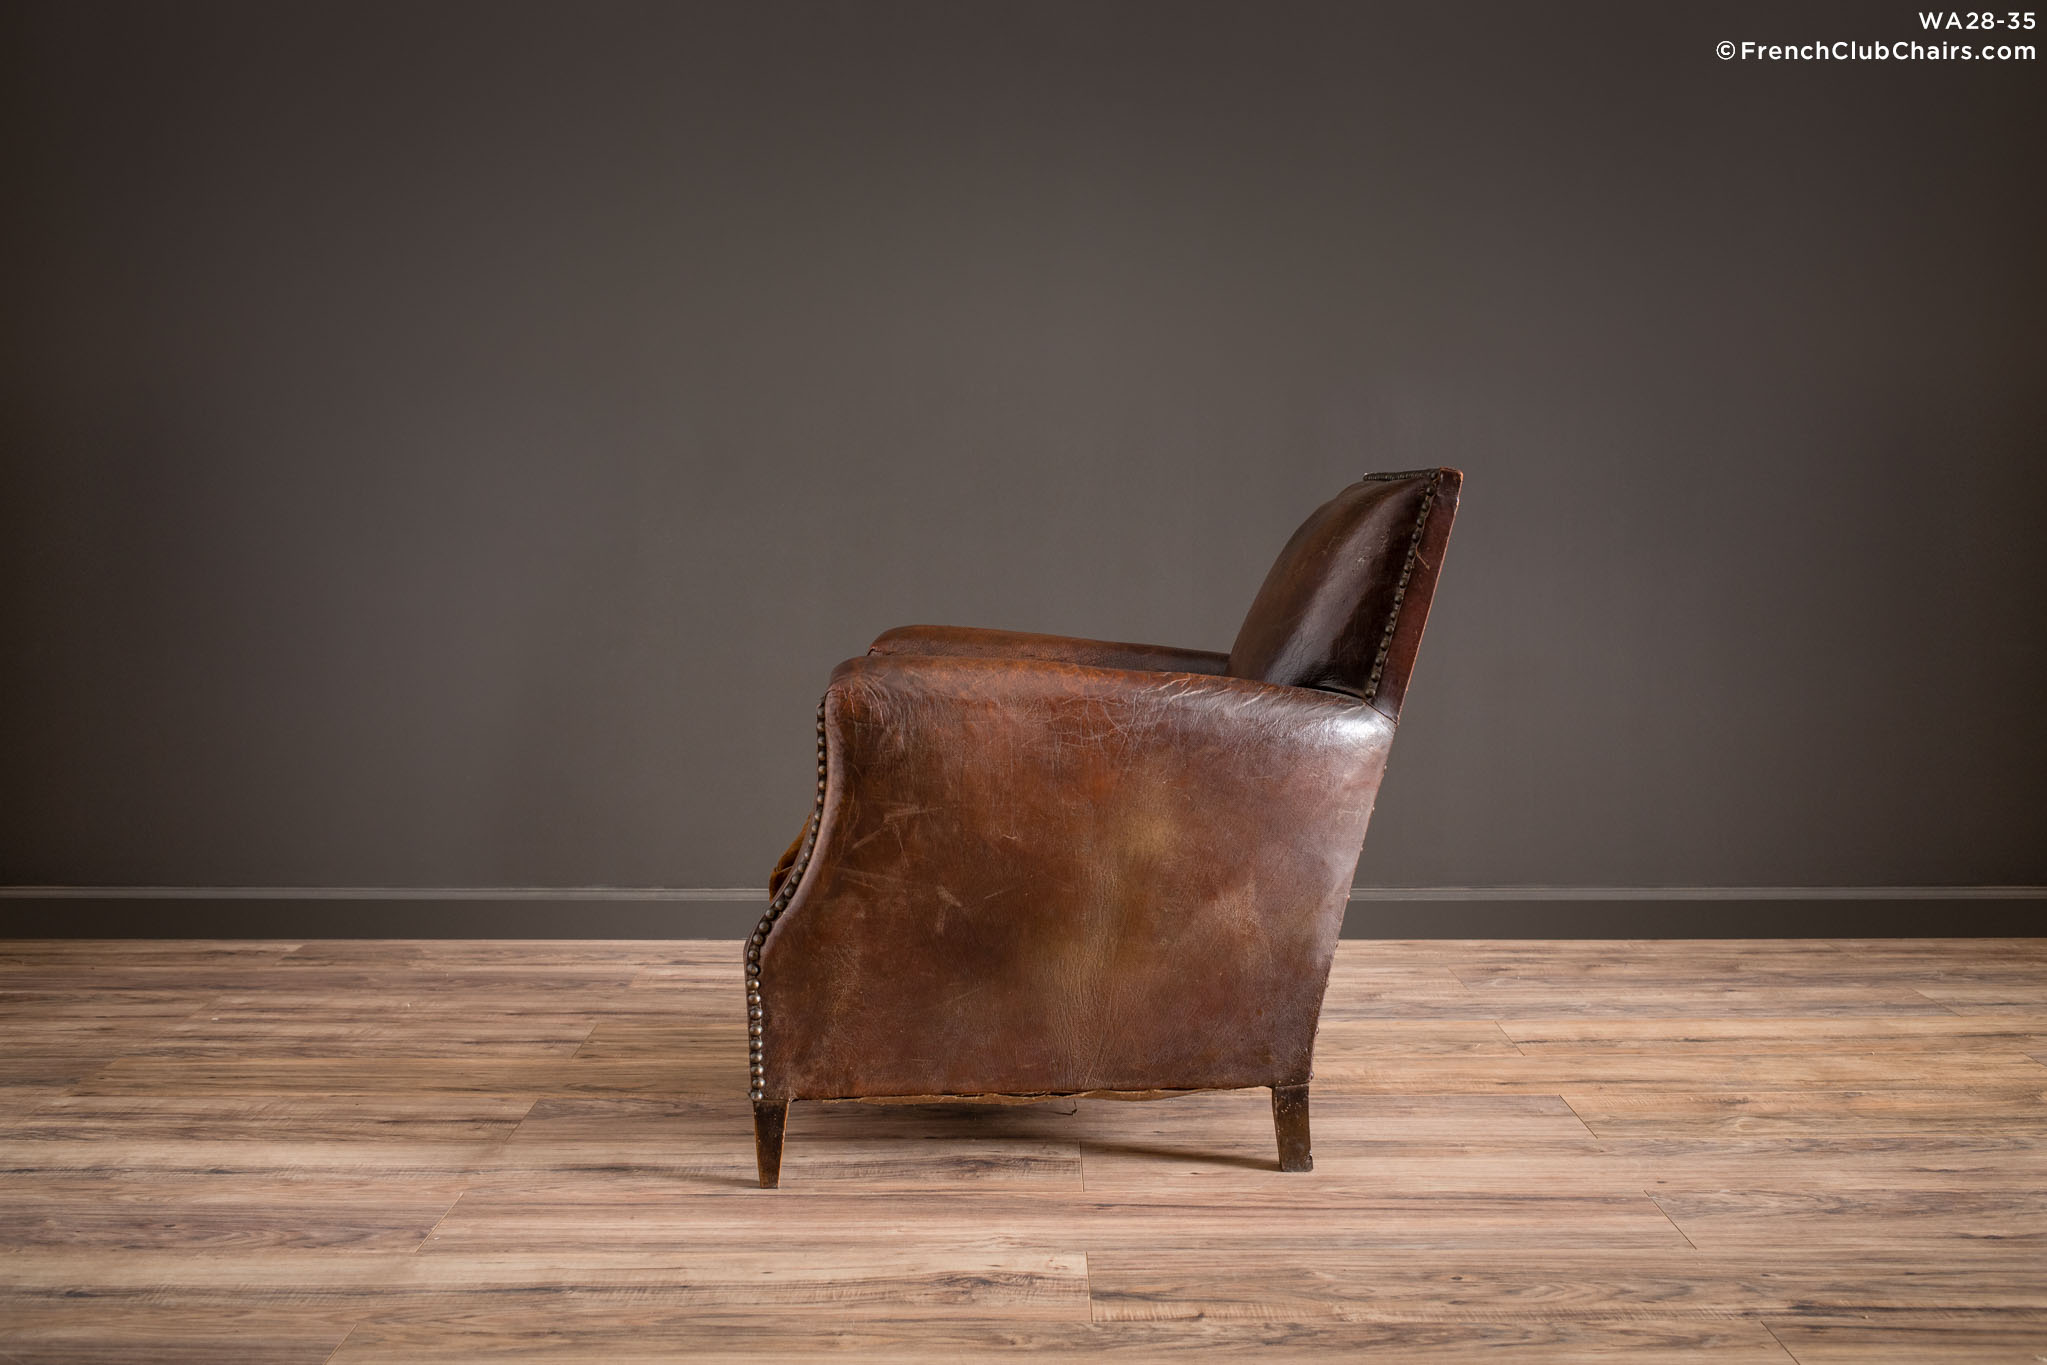 WA_28-35_Nailed_Lounge_Mesnil_Solo_R_4LT1-williams-antiks-leather-french-club-chair-wa_fcccom